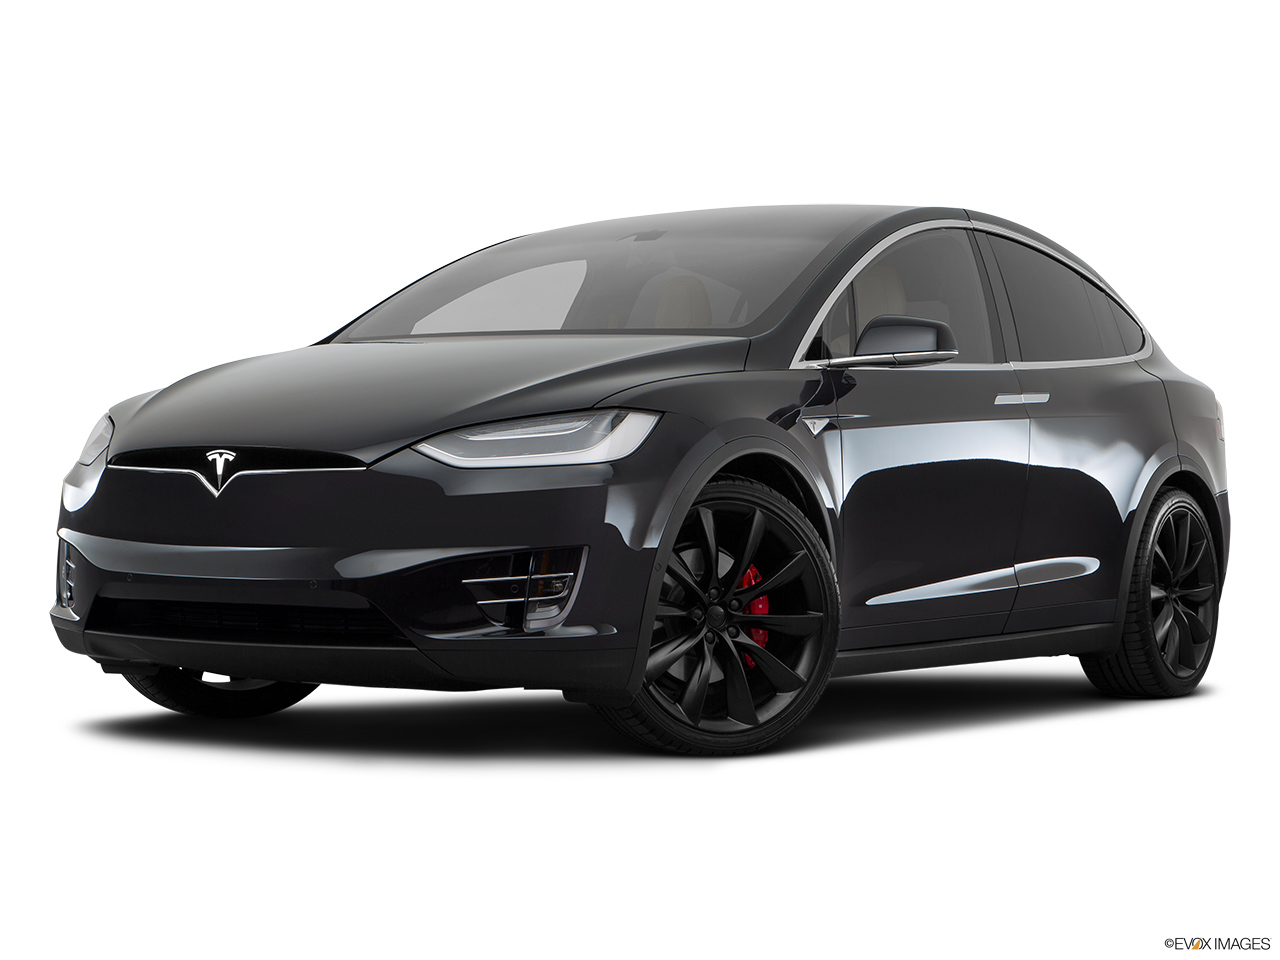 Tesla Model X Motor >> Tesla Model X 2017 75D in UAE: New Car Prices, Specs, Reviews & Photos | YallaMotor